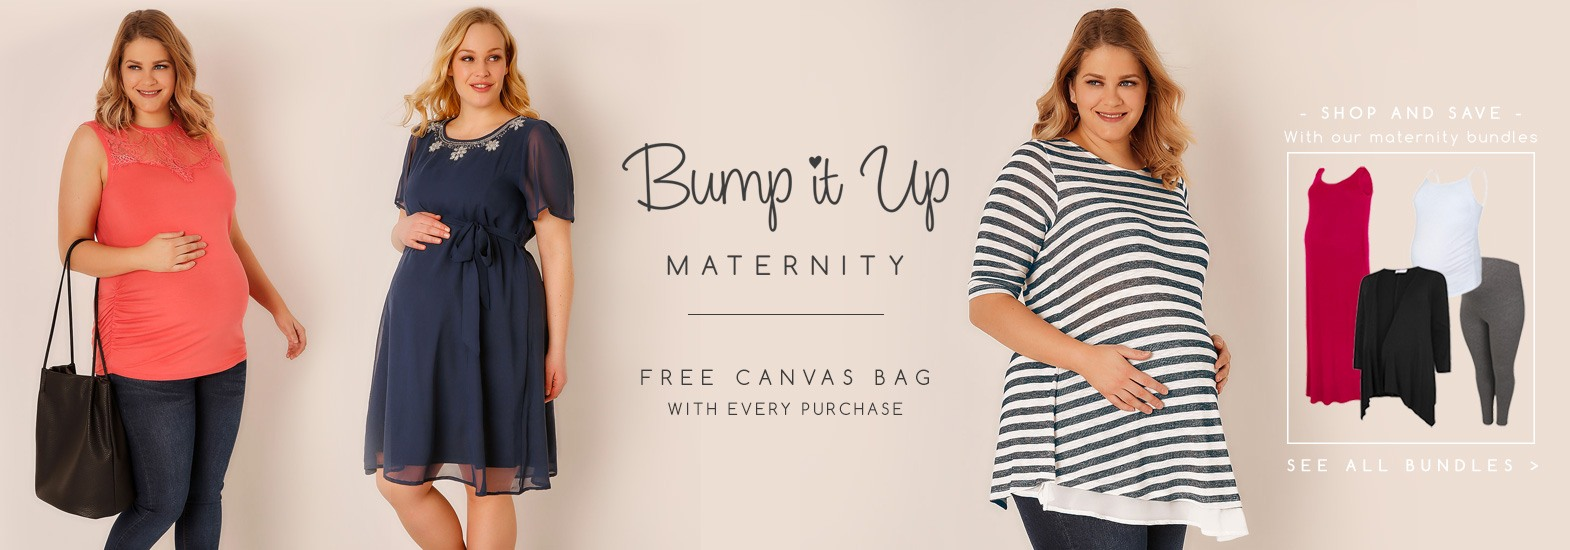 Maternity Clothing | Bump It Up Maternity